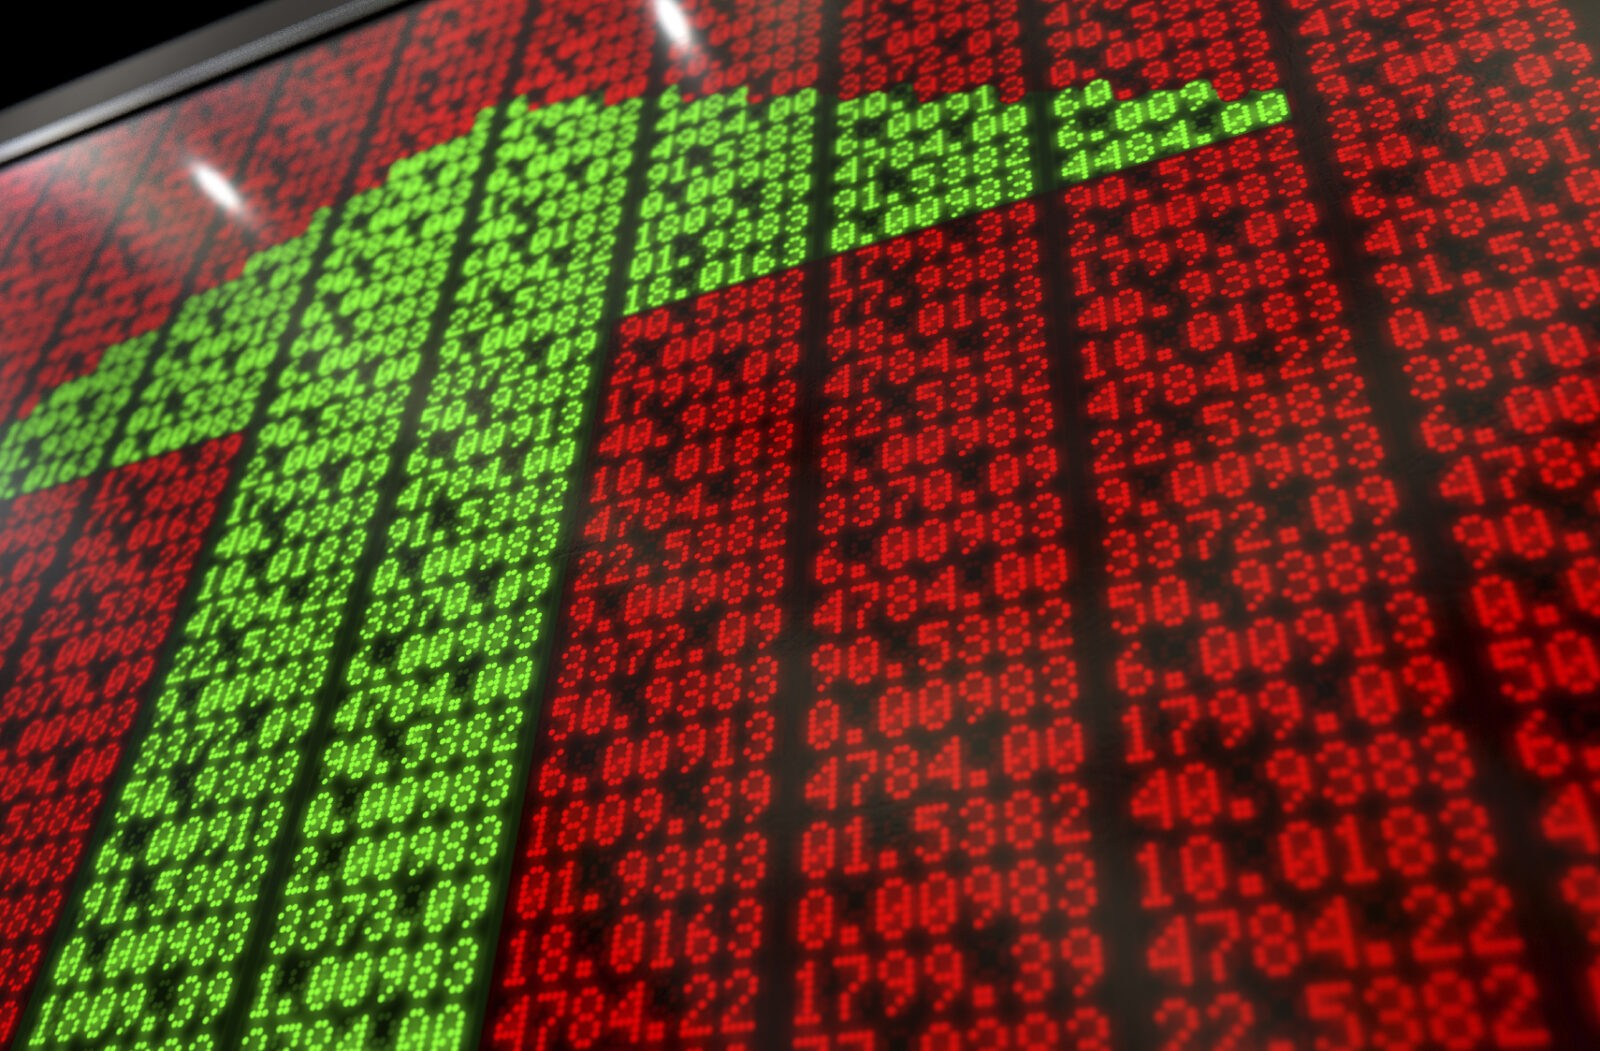 A flat section of a digital stock market indicator board with green numbers making up an upward facing arrow